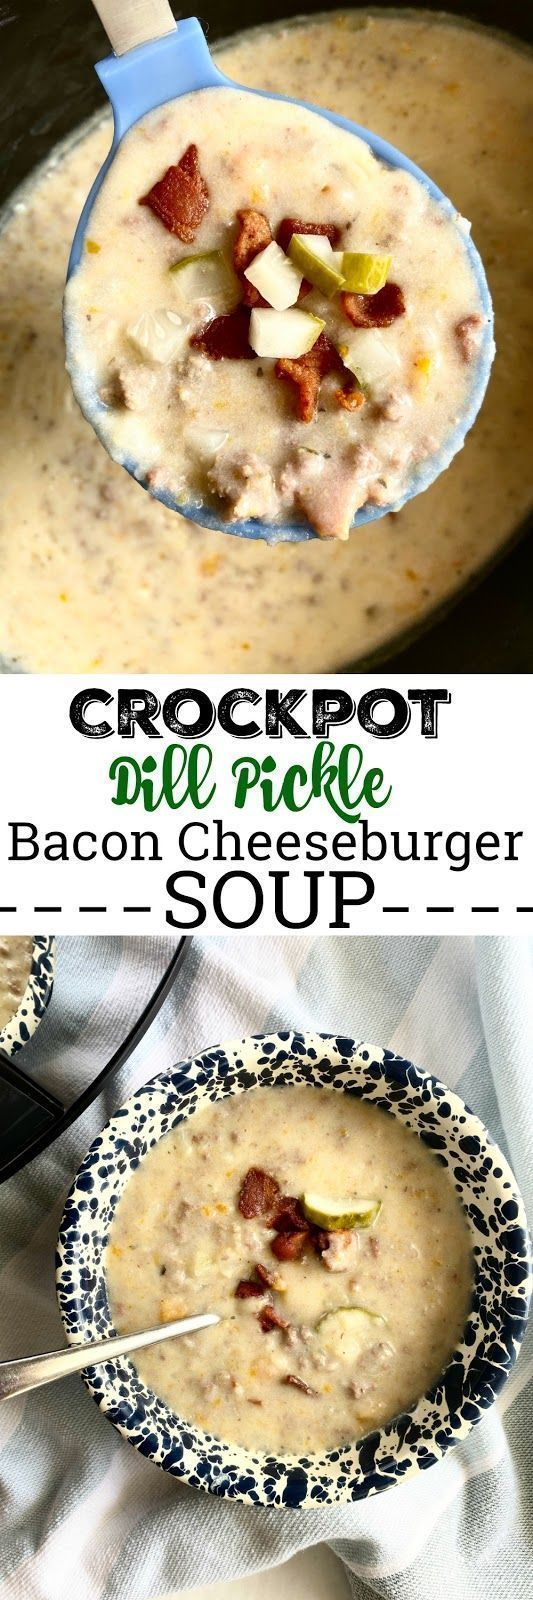 Crockpot Dill Pickle Bacon Cheeseburger Soup - #bacon #cheeseburger #crockpot #pickle - #Marge'sCheeseburgerSoup #dillpicklesoup Crockpot Dill Pickle Bacon Cheeseburger Soup - #bacon #cheeseburger #crockpot #pickle - #Marge'sCheeseburgerSoup #dillpicklesoup Crockpot Dill Pickle Bacon Cheeseburger Soup - #bacon #cheeseburger #crockpot #pickle - #Marge'sCheeseburgerSoup #dillpicklesoup Crockpot Dill Pickle Bacon Cheeseburger Soup - #bacon #cheeseburger #crockpot #pickle - #Marge'sCheeseburgerSoup #dillpicklesoup